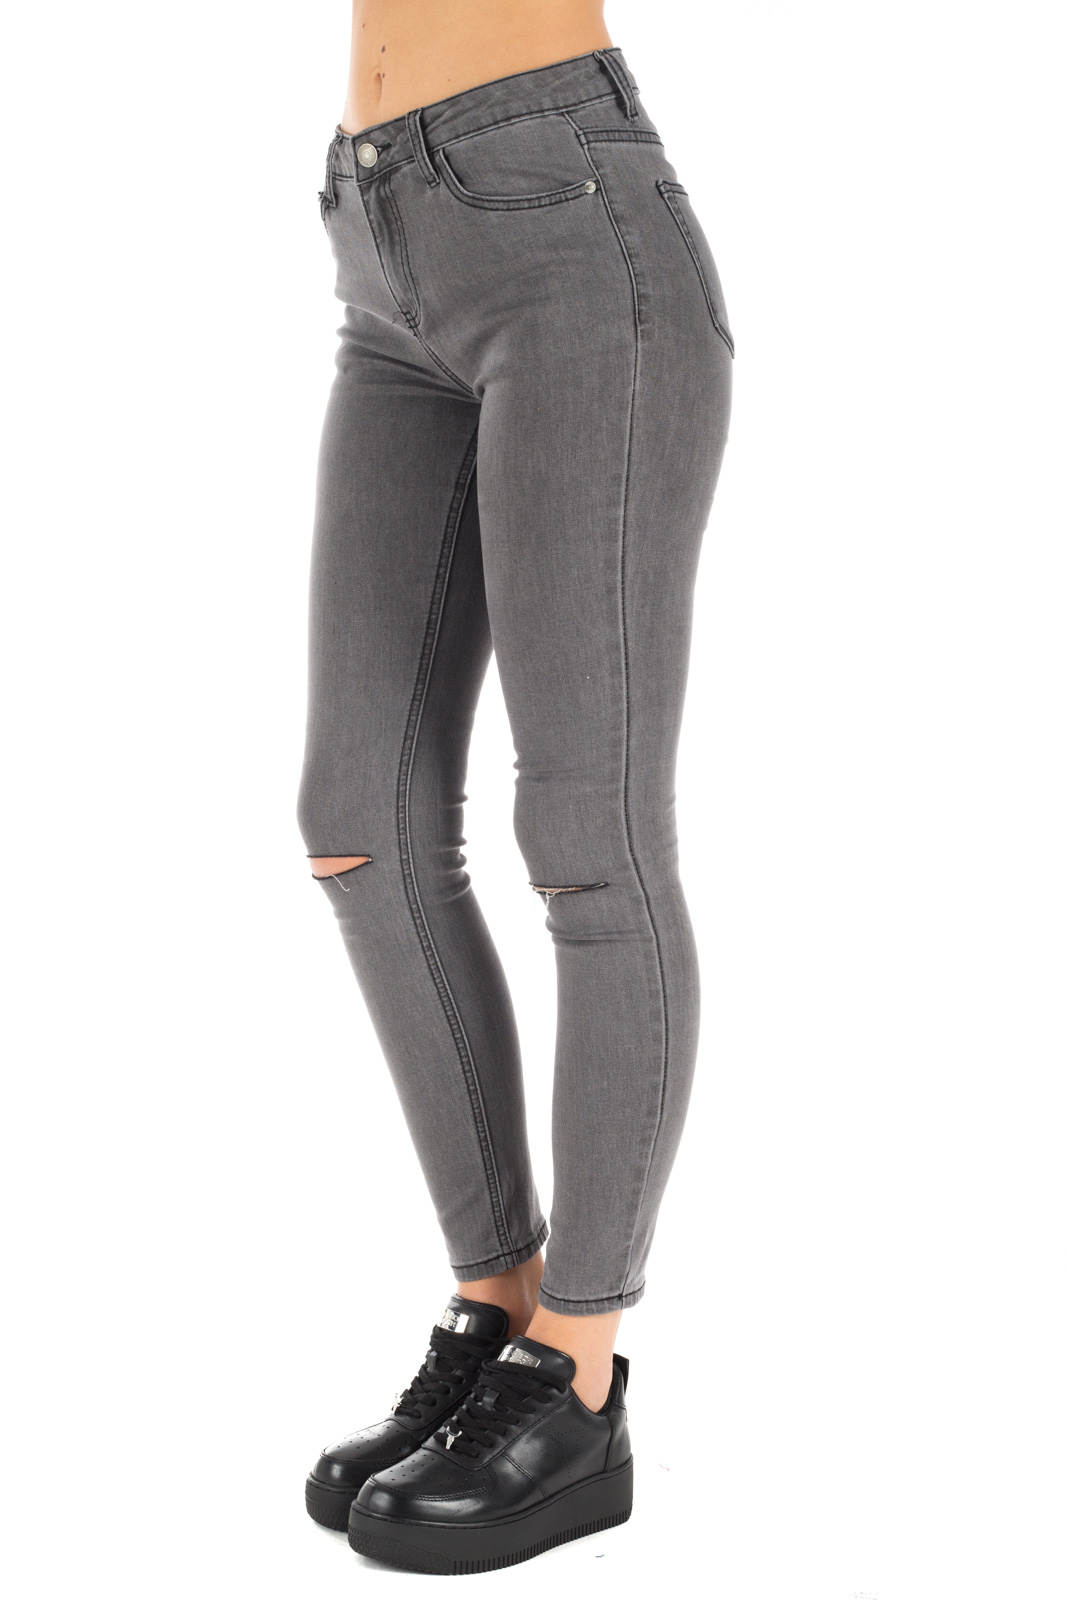 Glamorous - Gray jeans with knee cuts